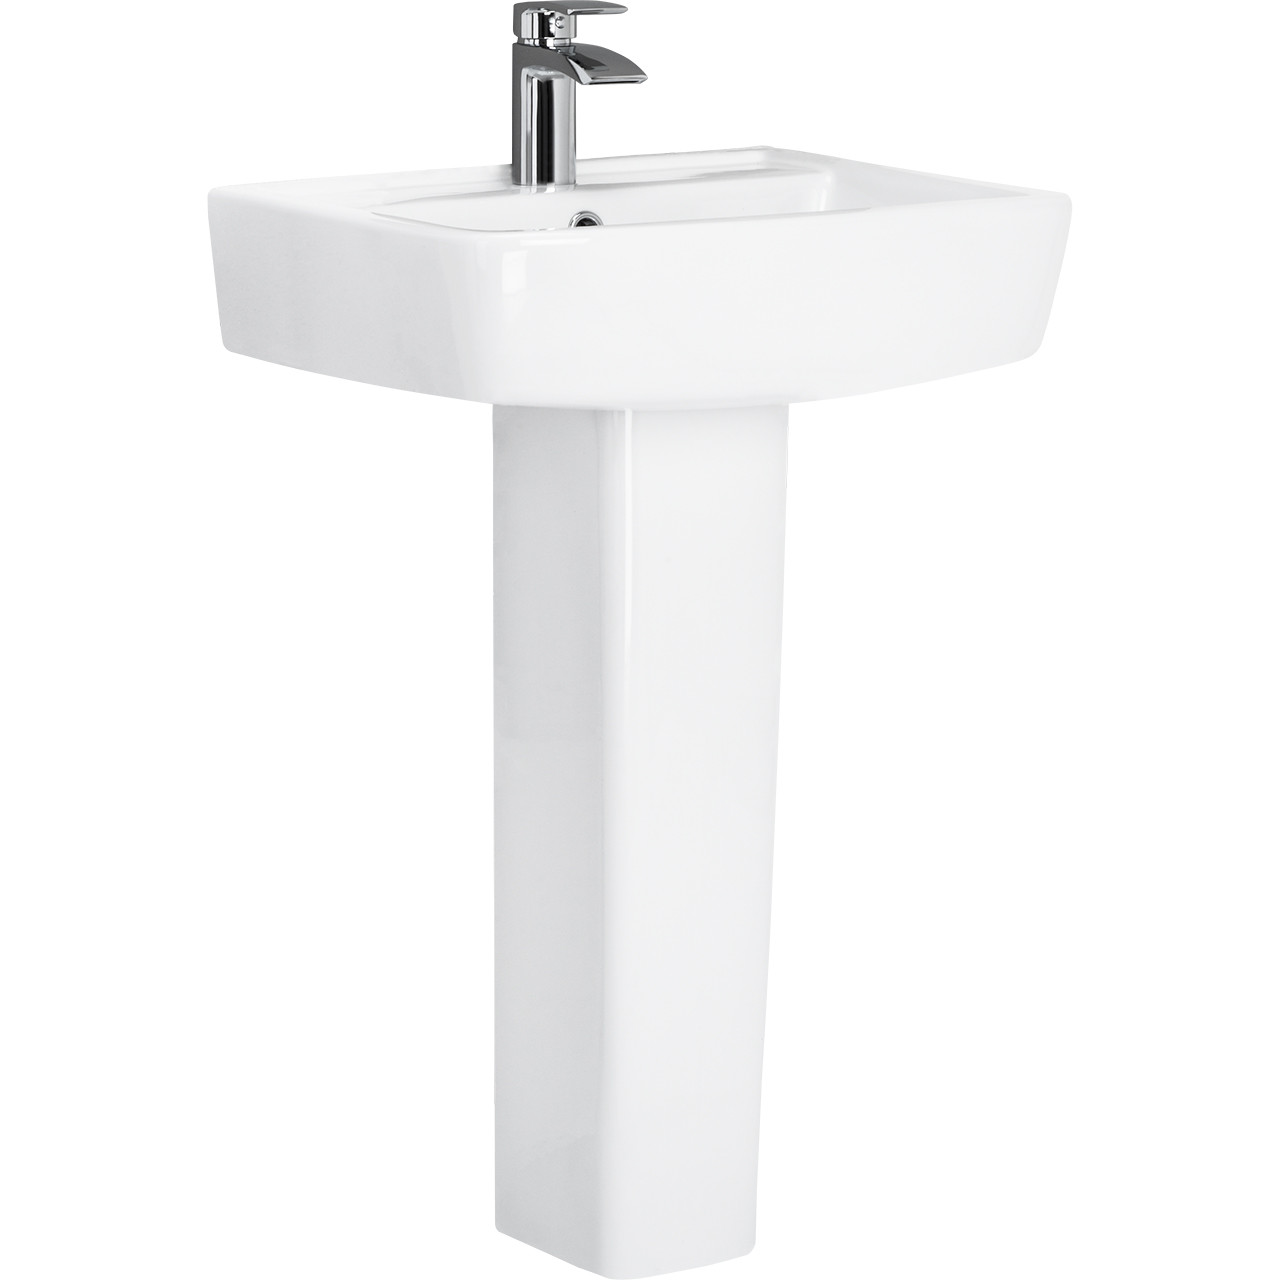 Paulo 600mm Basin & Full Pedestal